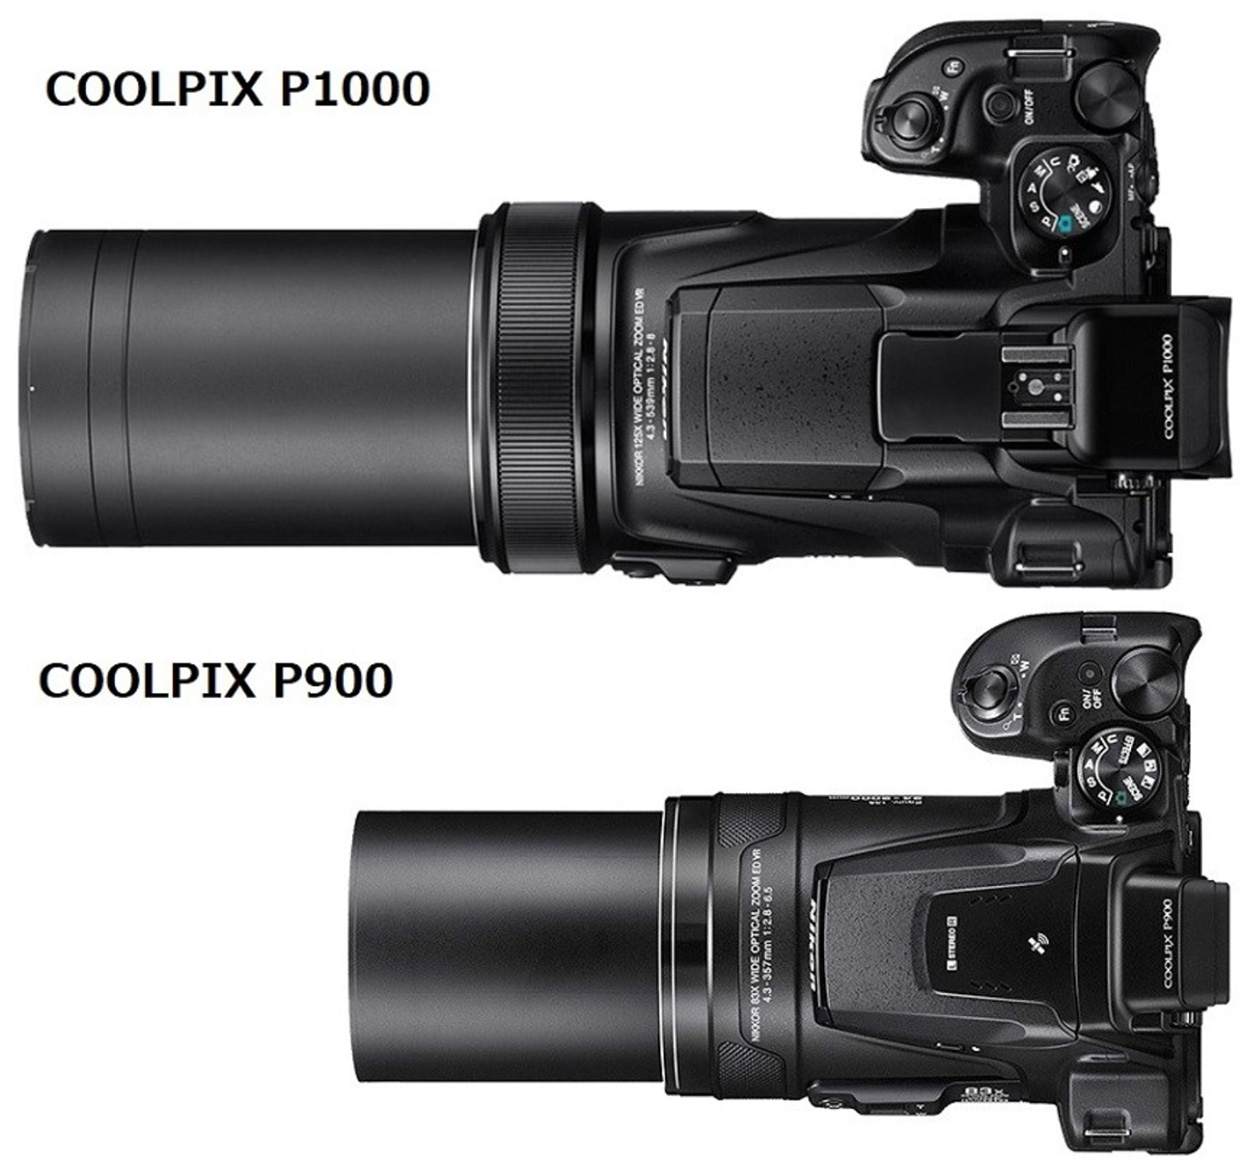 Nikon Coolpix P1000 vs  Nikon Coolpix P900 specifications